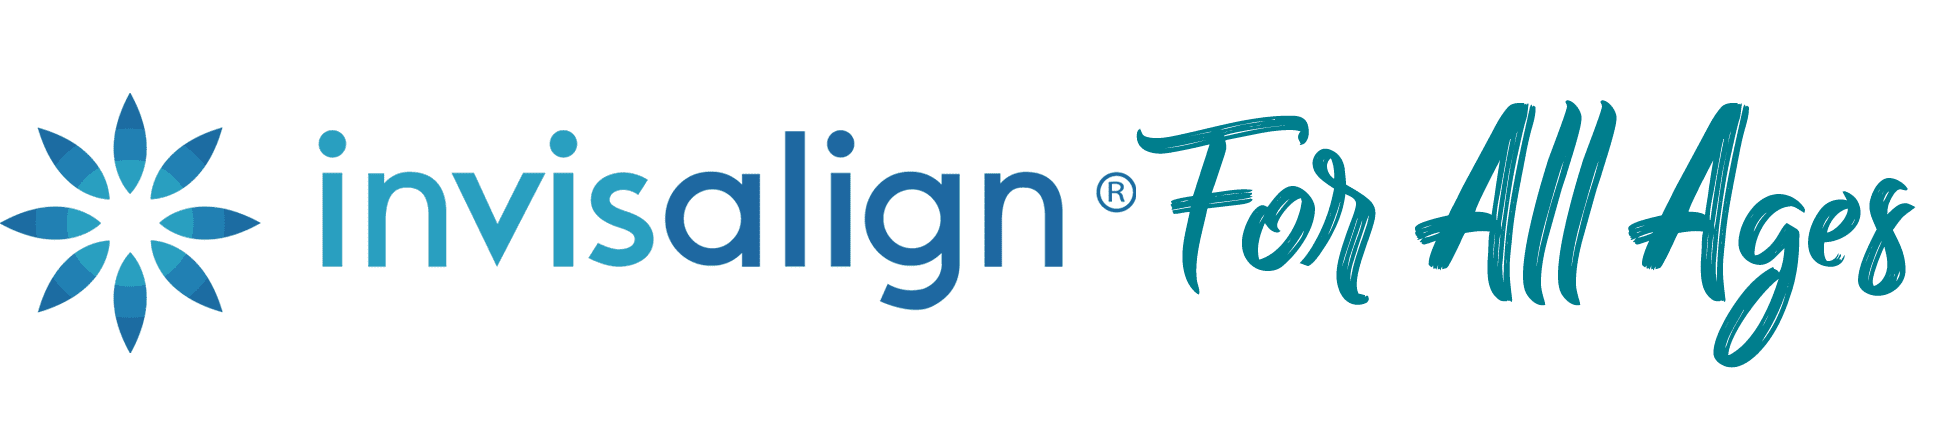 Invisalign for All Ages